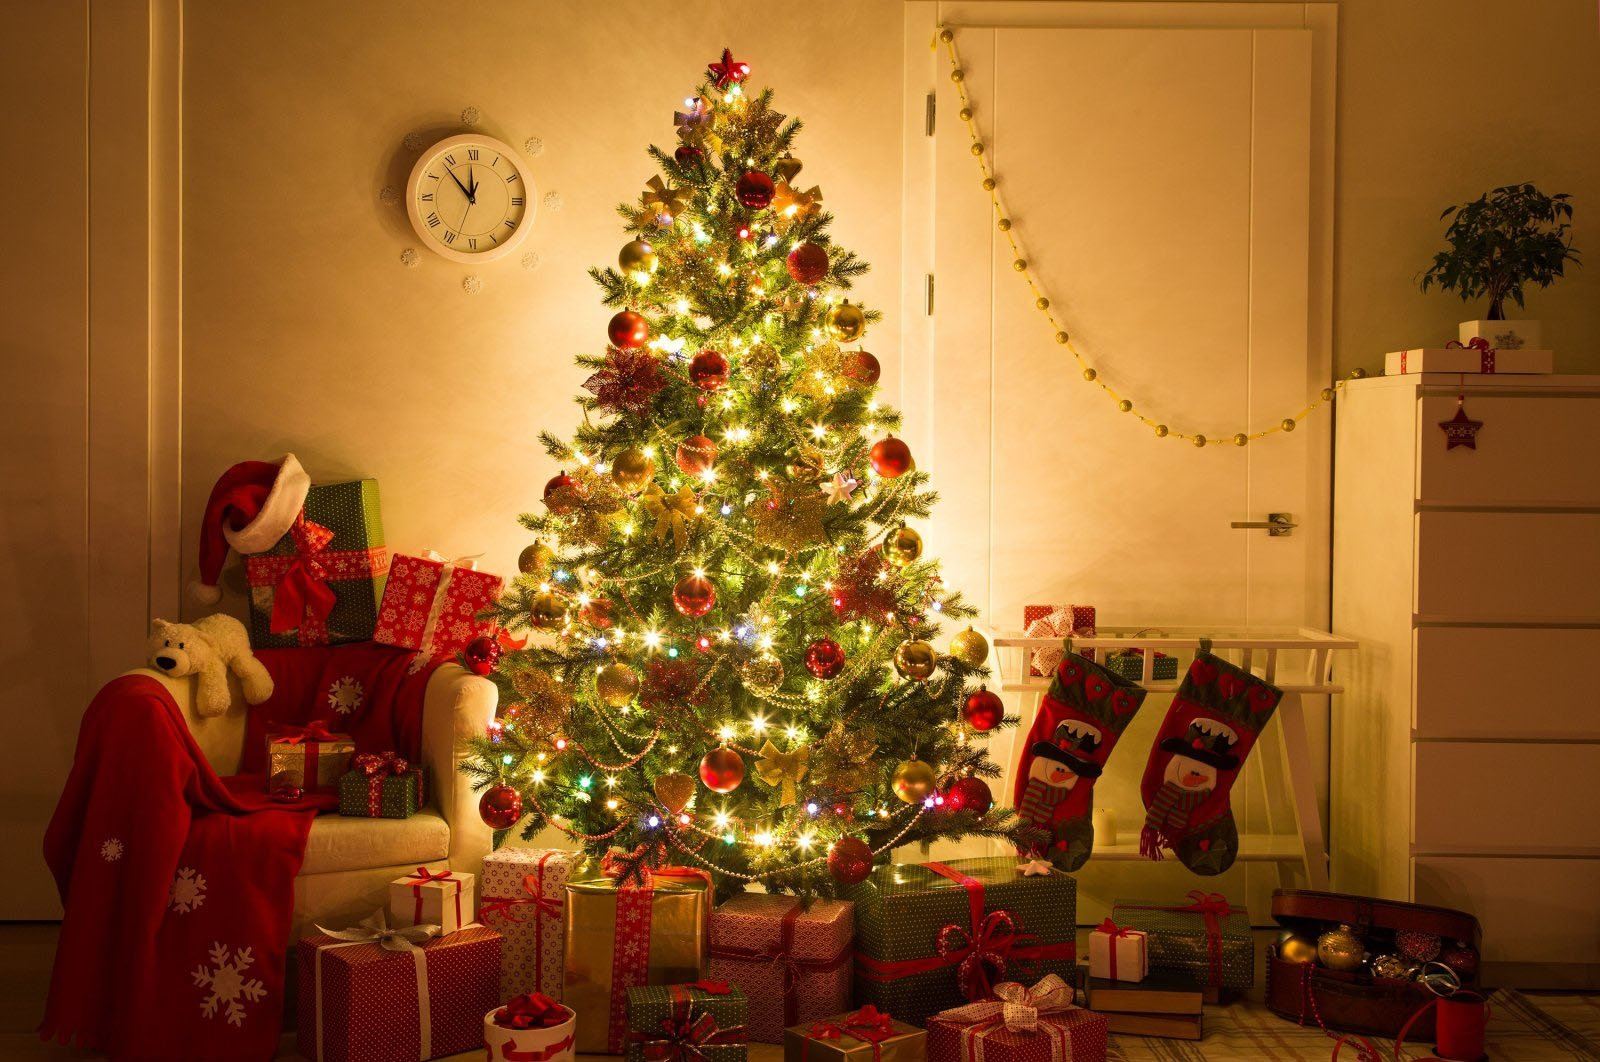 Decorating a pine tree for Christmas celebrations is taken from pagan customs and ceremonies for New Year's. (Shutterstock Photo)